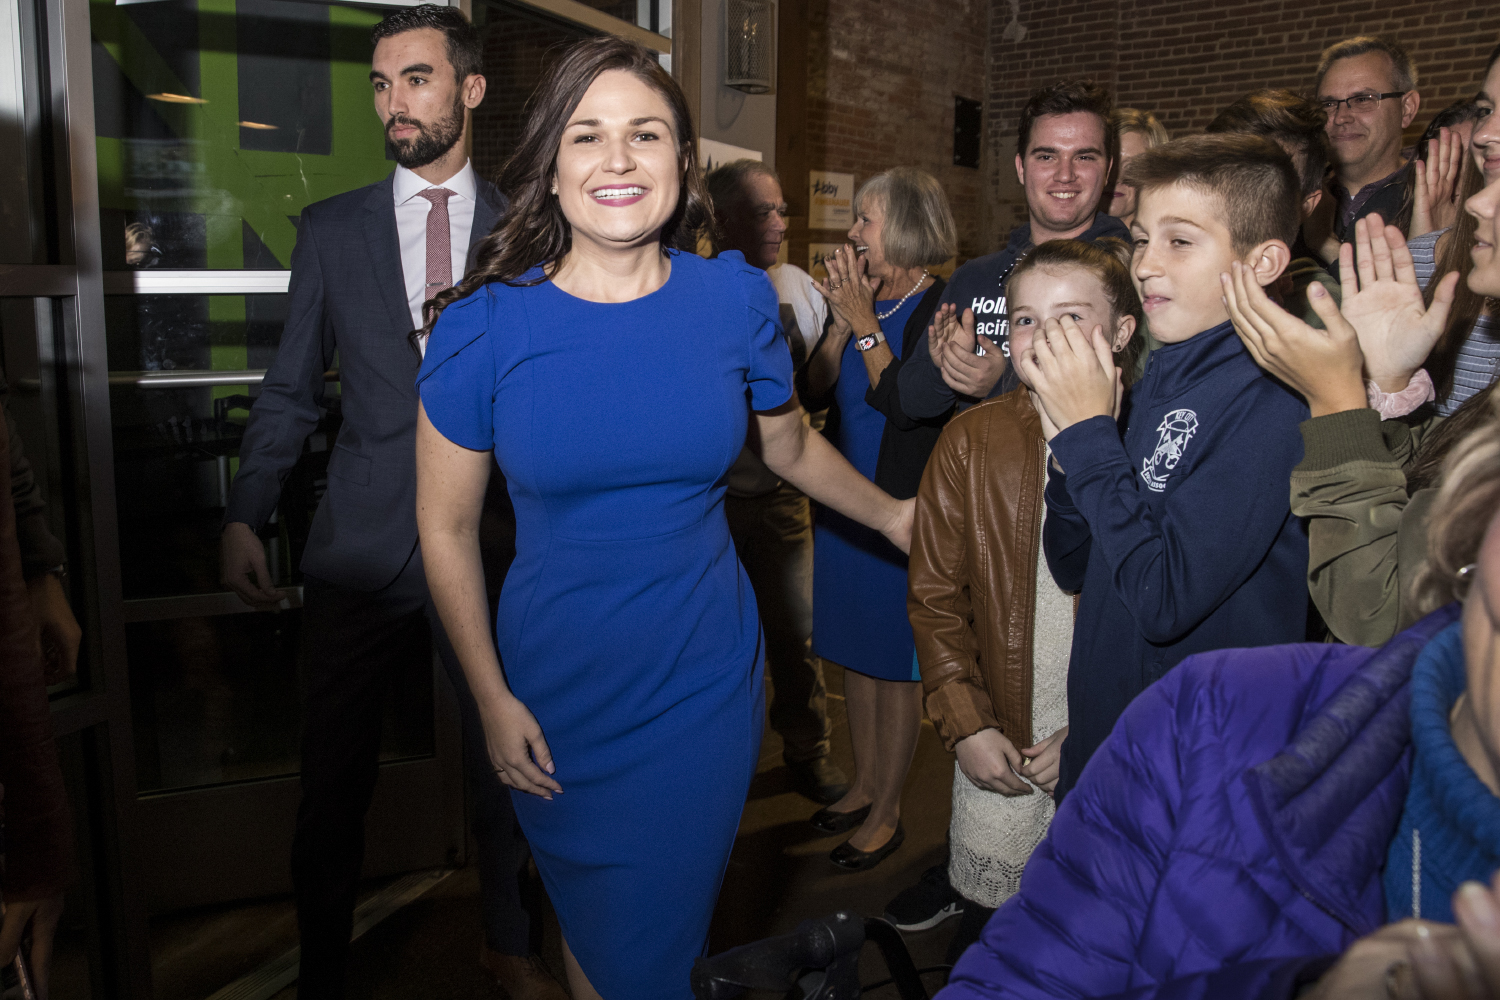 Democratic+candidate+for+Iowa%E2%80%99s+first+congressional+district+Abby+Finkenauer+is+greeted+by+supporters+during+a+watch+party+at+7+Hills+Brewing+Company+in+Dubuque+Iowa+on+Tuesday+Nov.+6%2C+2018.+Finkenauer+defeated+incumbent+Republican+Rod+Blum+and%2C+along+with+Alexandria+Ocasio-Cortez%2C+NY-14%2C+becomes+one+of+the+first+women+under+30+elected+to+the+U.S.+House+of+Representatives.+